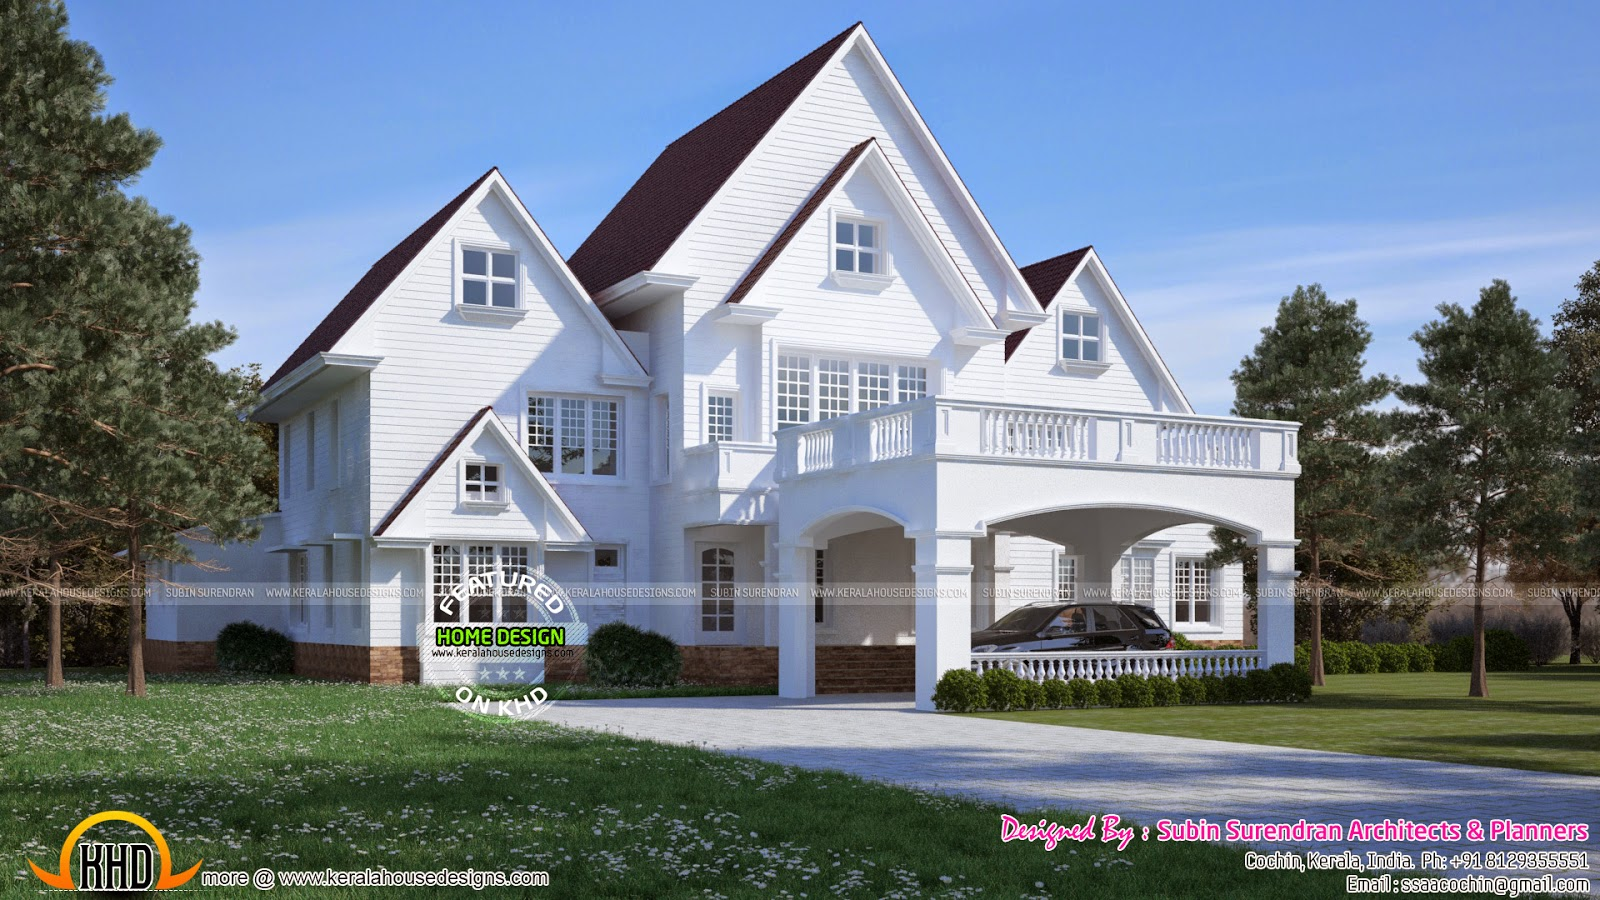 Super luxury 5 bedroom  attached American model house